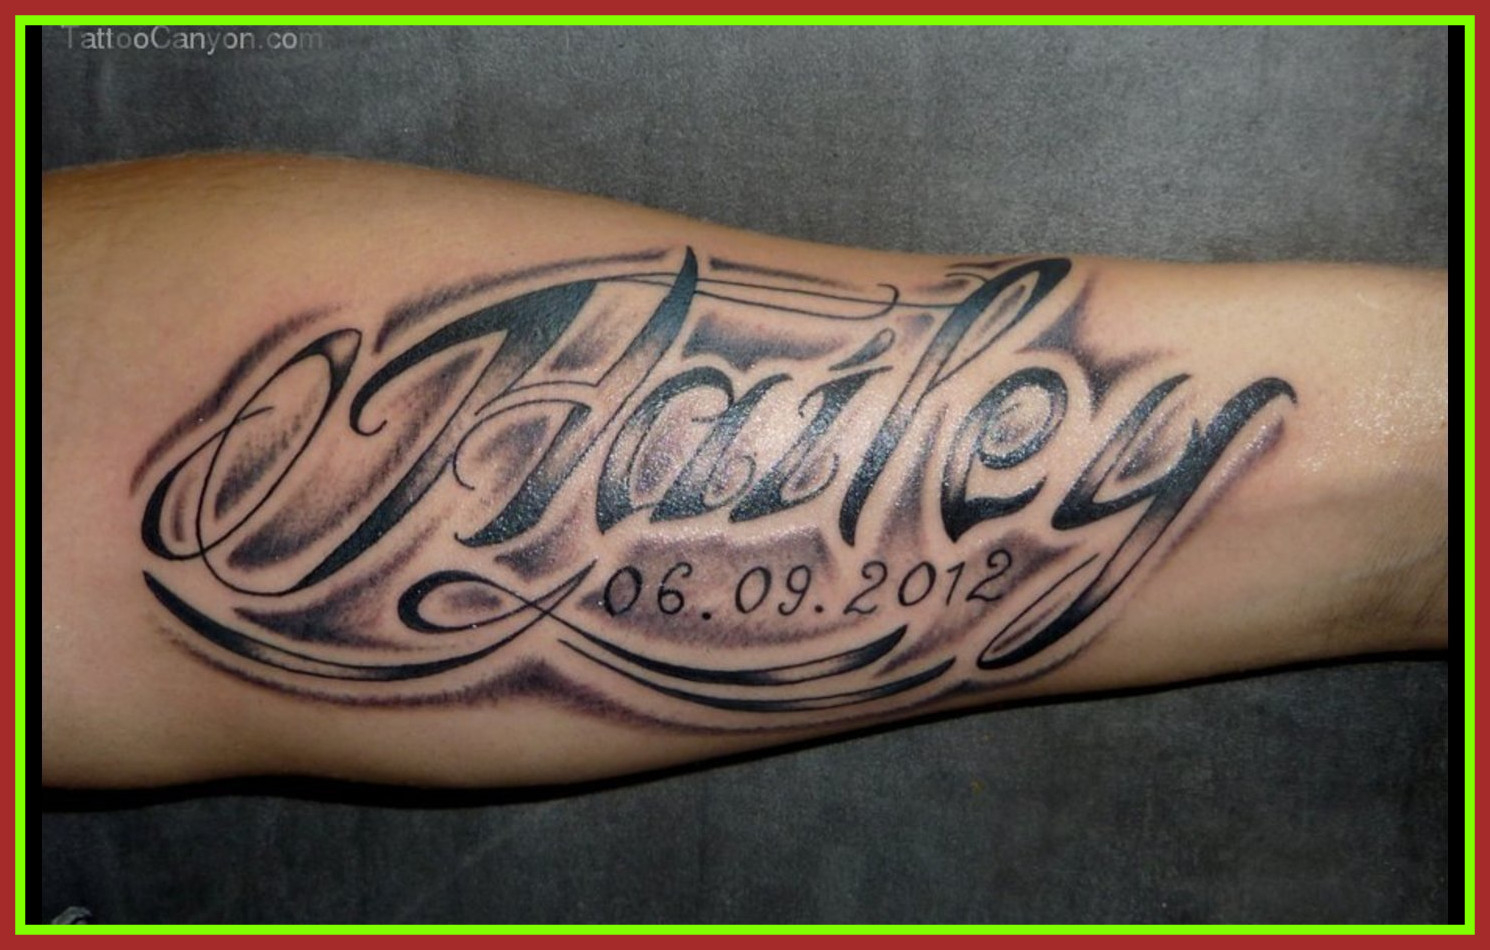 Forearm Tattoo Designs With Names Arm Tattoo Sites It denotes love that is to last for infinity. forearm tattoo designs with names arm